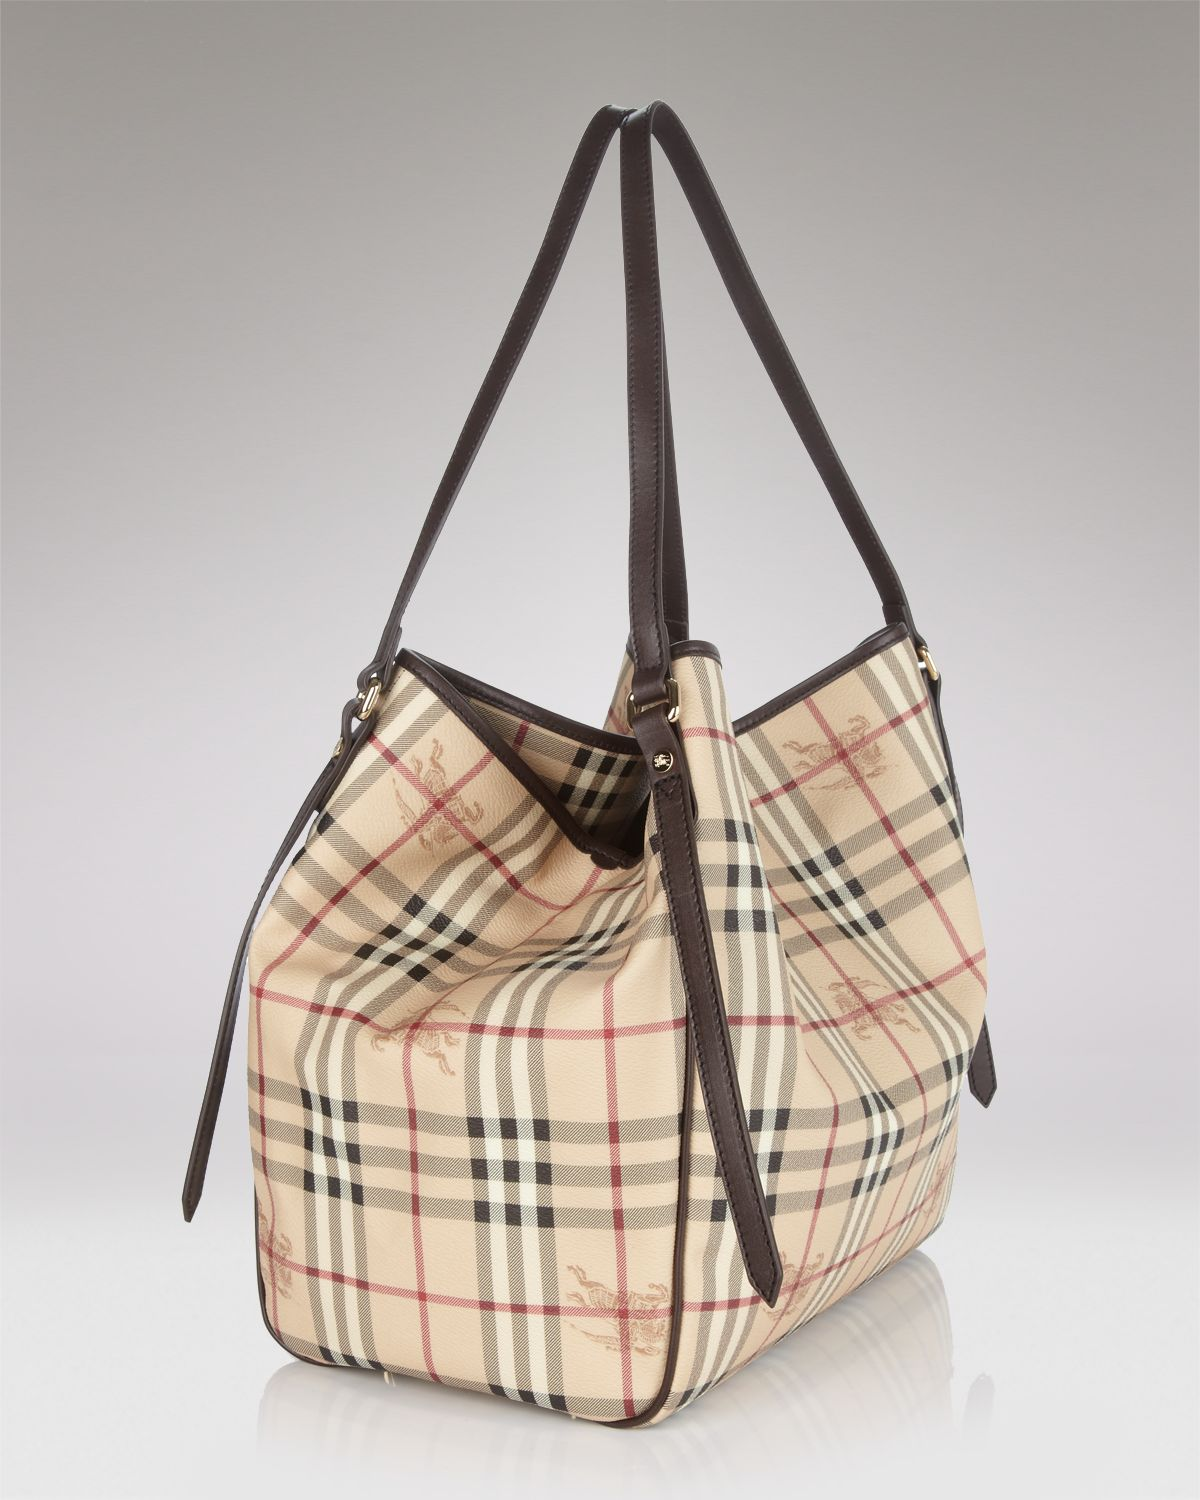 24ed2ad0e66e Burberry Haymarket Check Handbag - Handbag Photos Eleventyone.Org